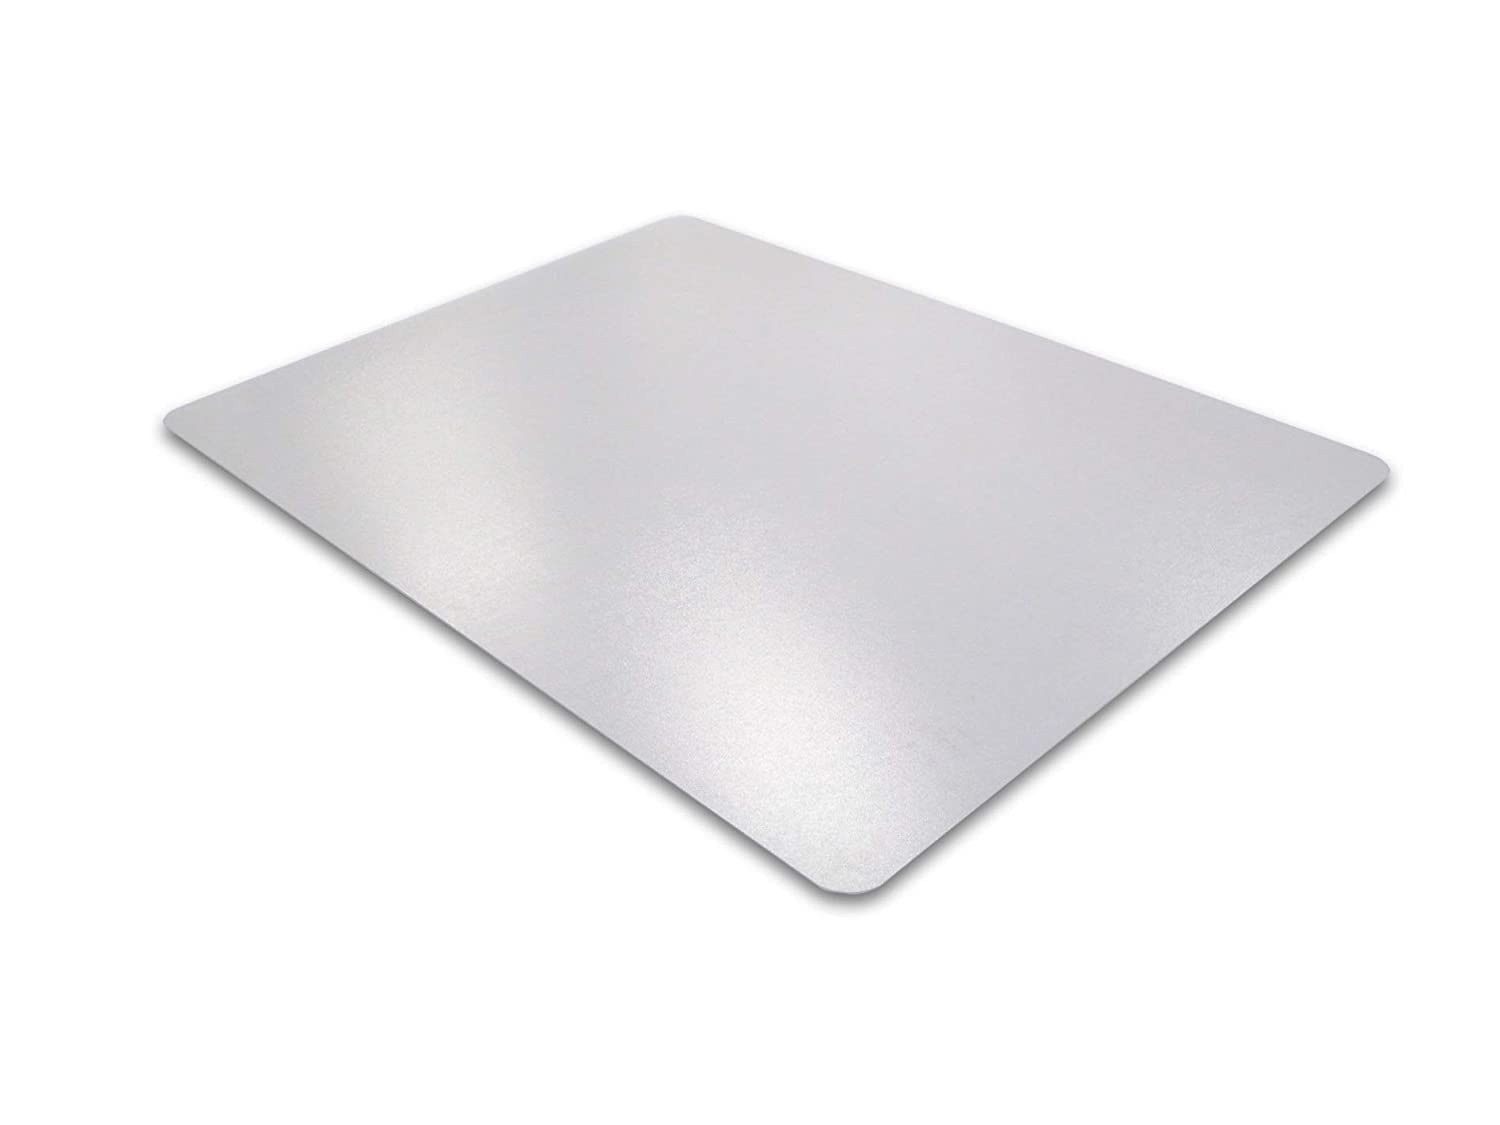 "Cleartex Ultimat Chair Mat, Clear Polycarbonate, For Hard Floors, Rectangular, Size 48"" x 60"" (FR1215219ER)"